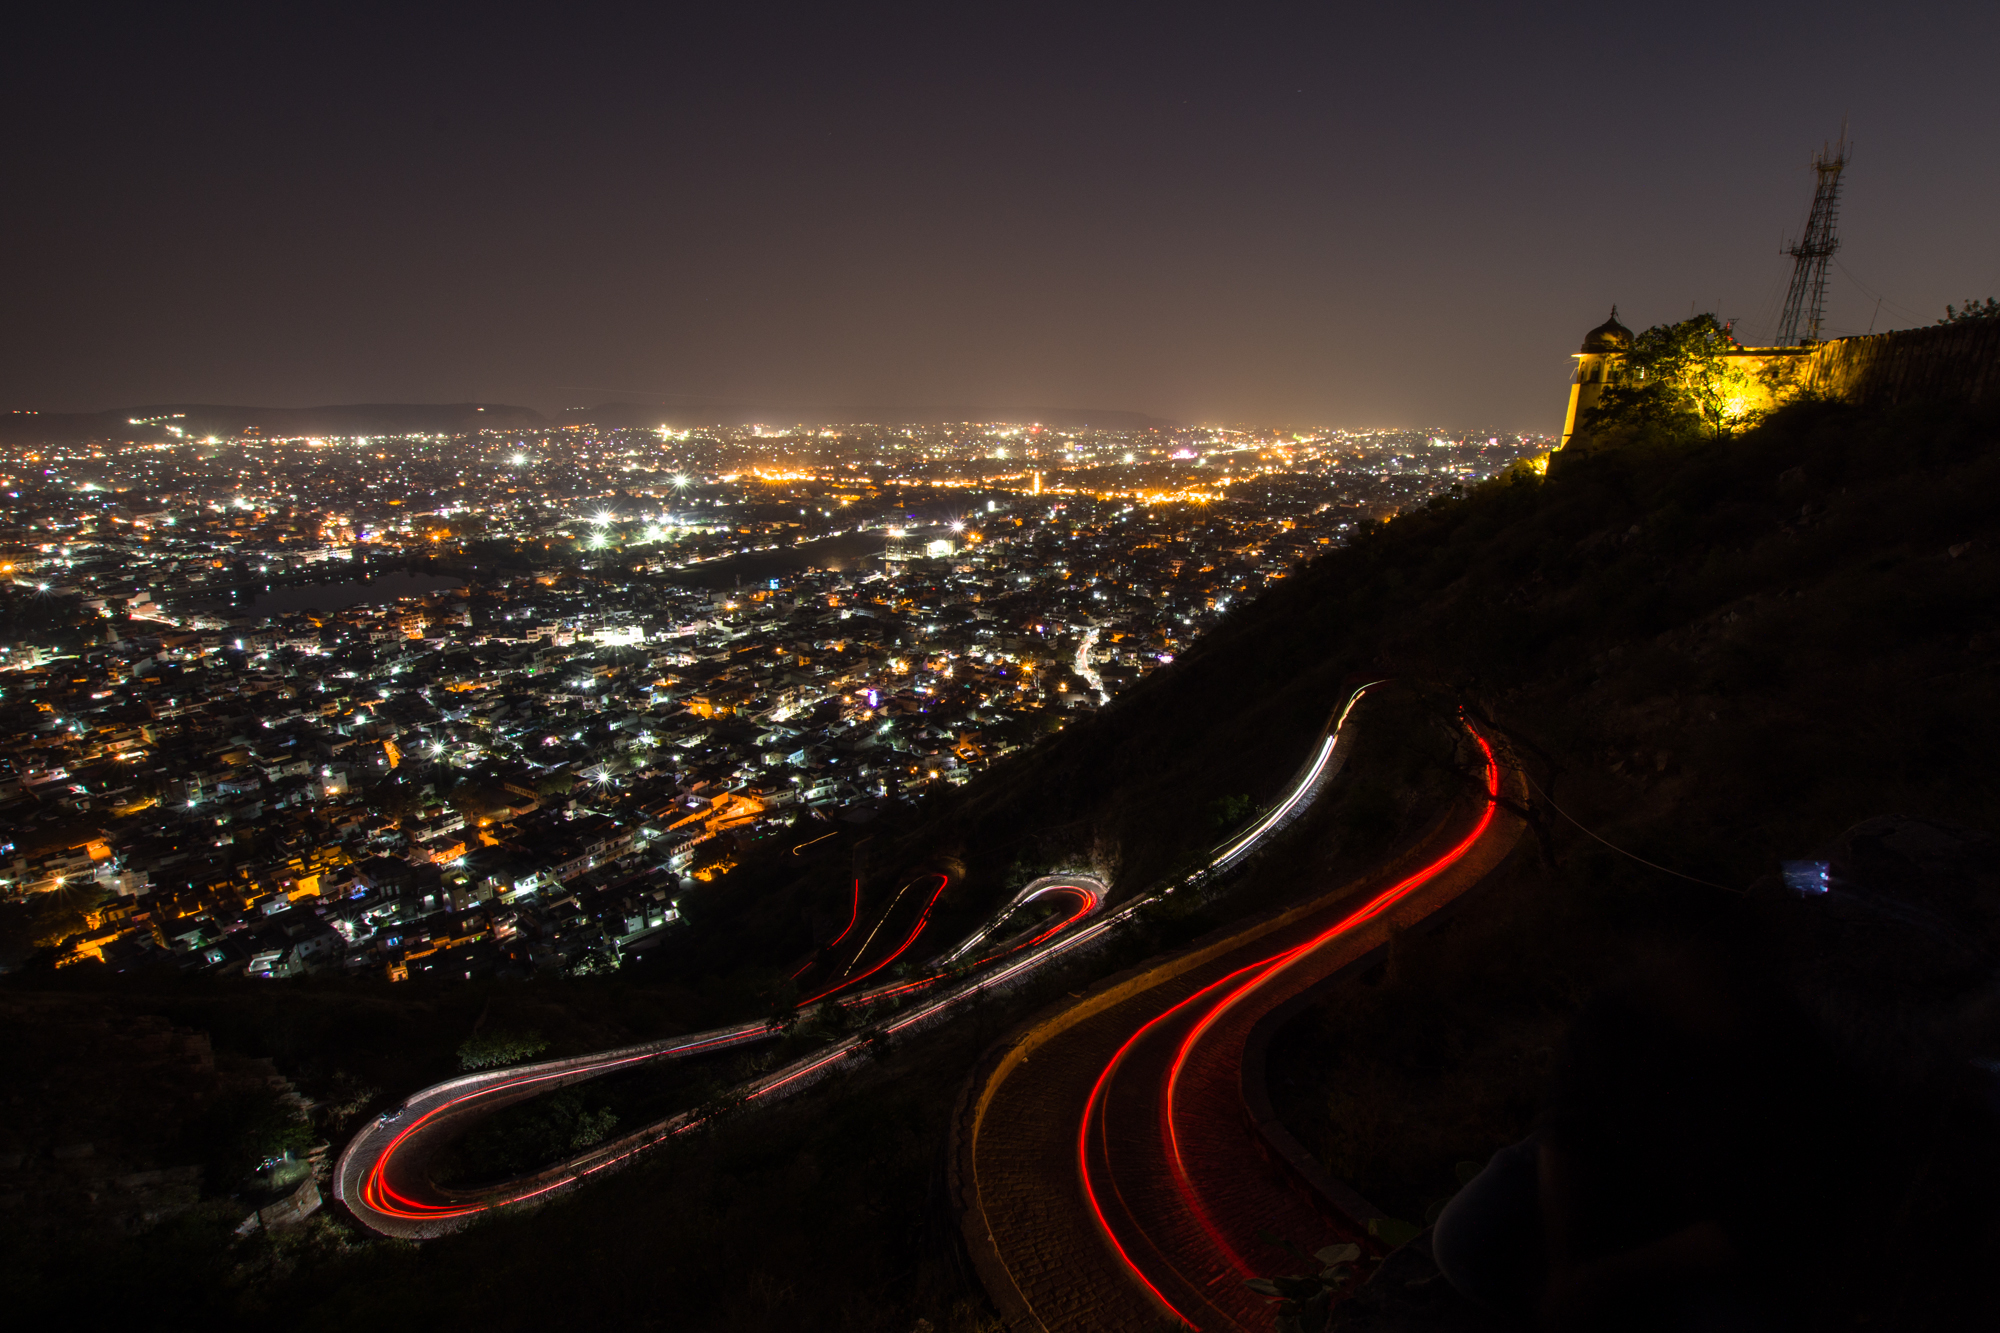 Zigzag root for the vehicles to visit a fort in Jaipur. Photograph taken while people are leaving from the fort. Curvy light trails along with the city lights creating mesmerizing urban pateern.